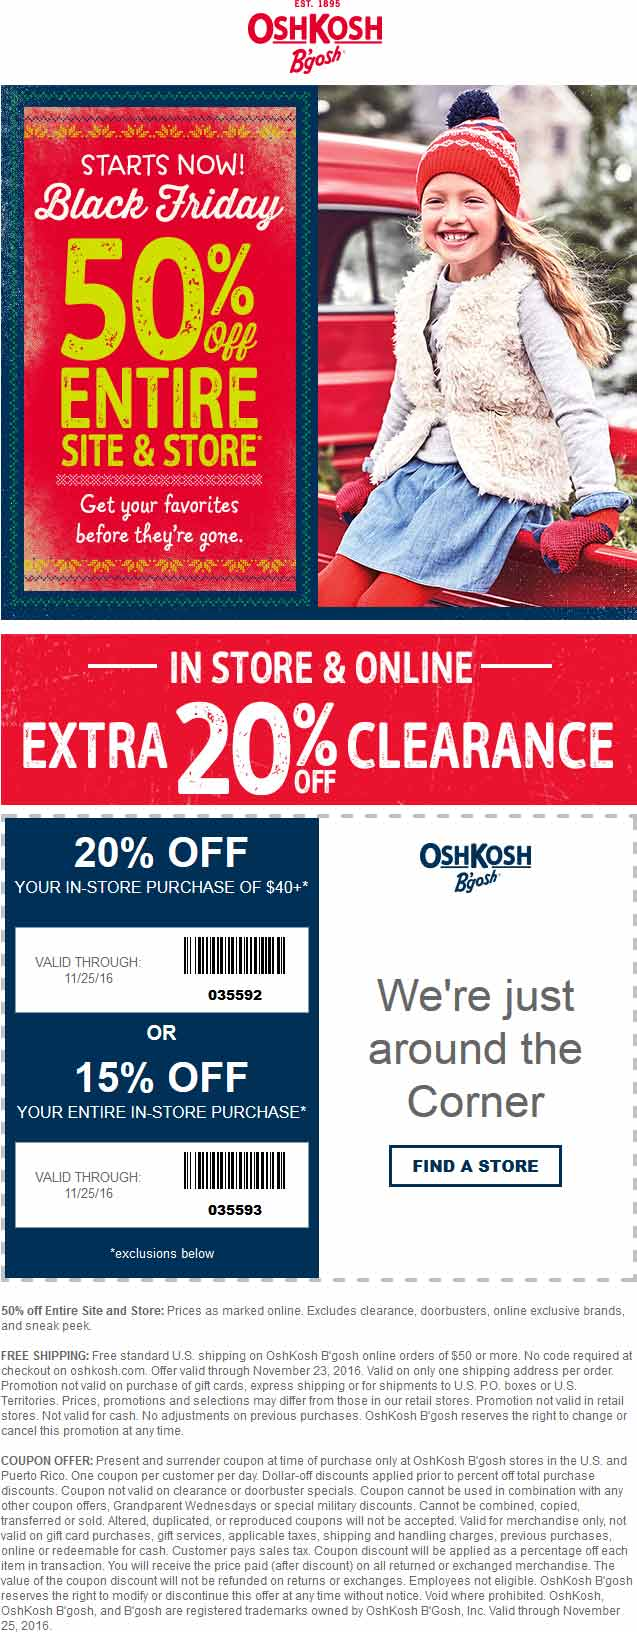 Oshkosh coupon codes